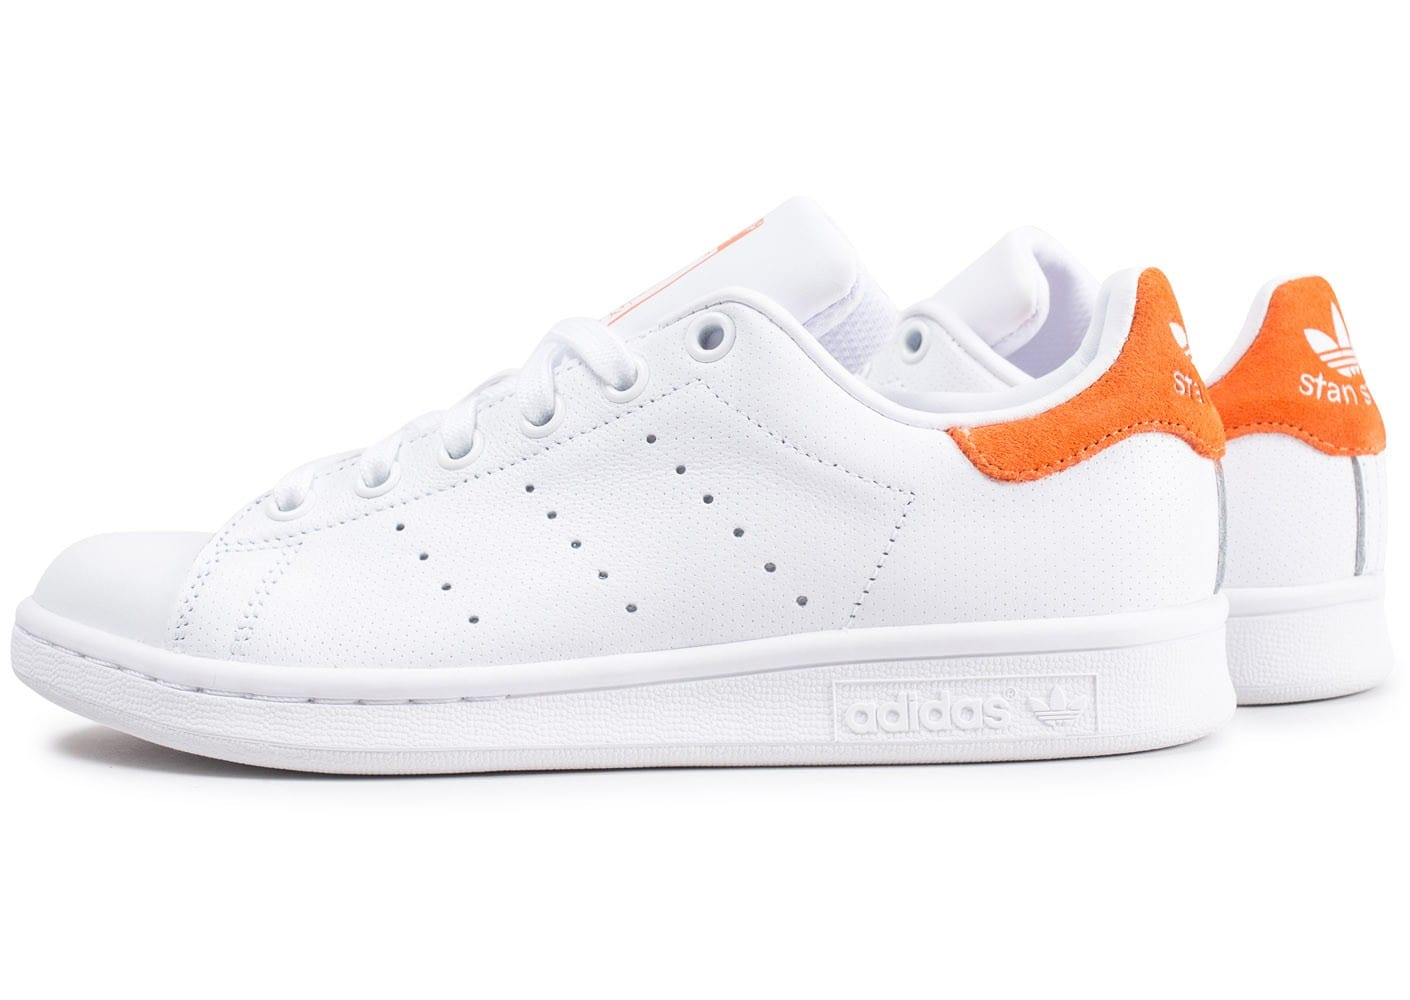 Suede Smith Et Orange Blanche Adidas Chaussures Stan x7pqTgxIF